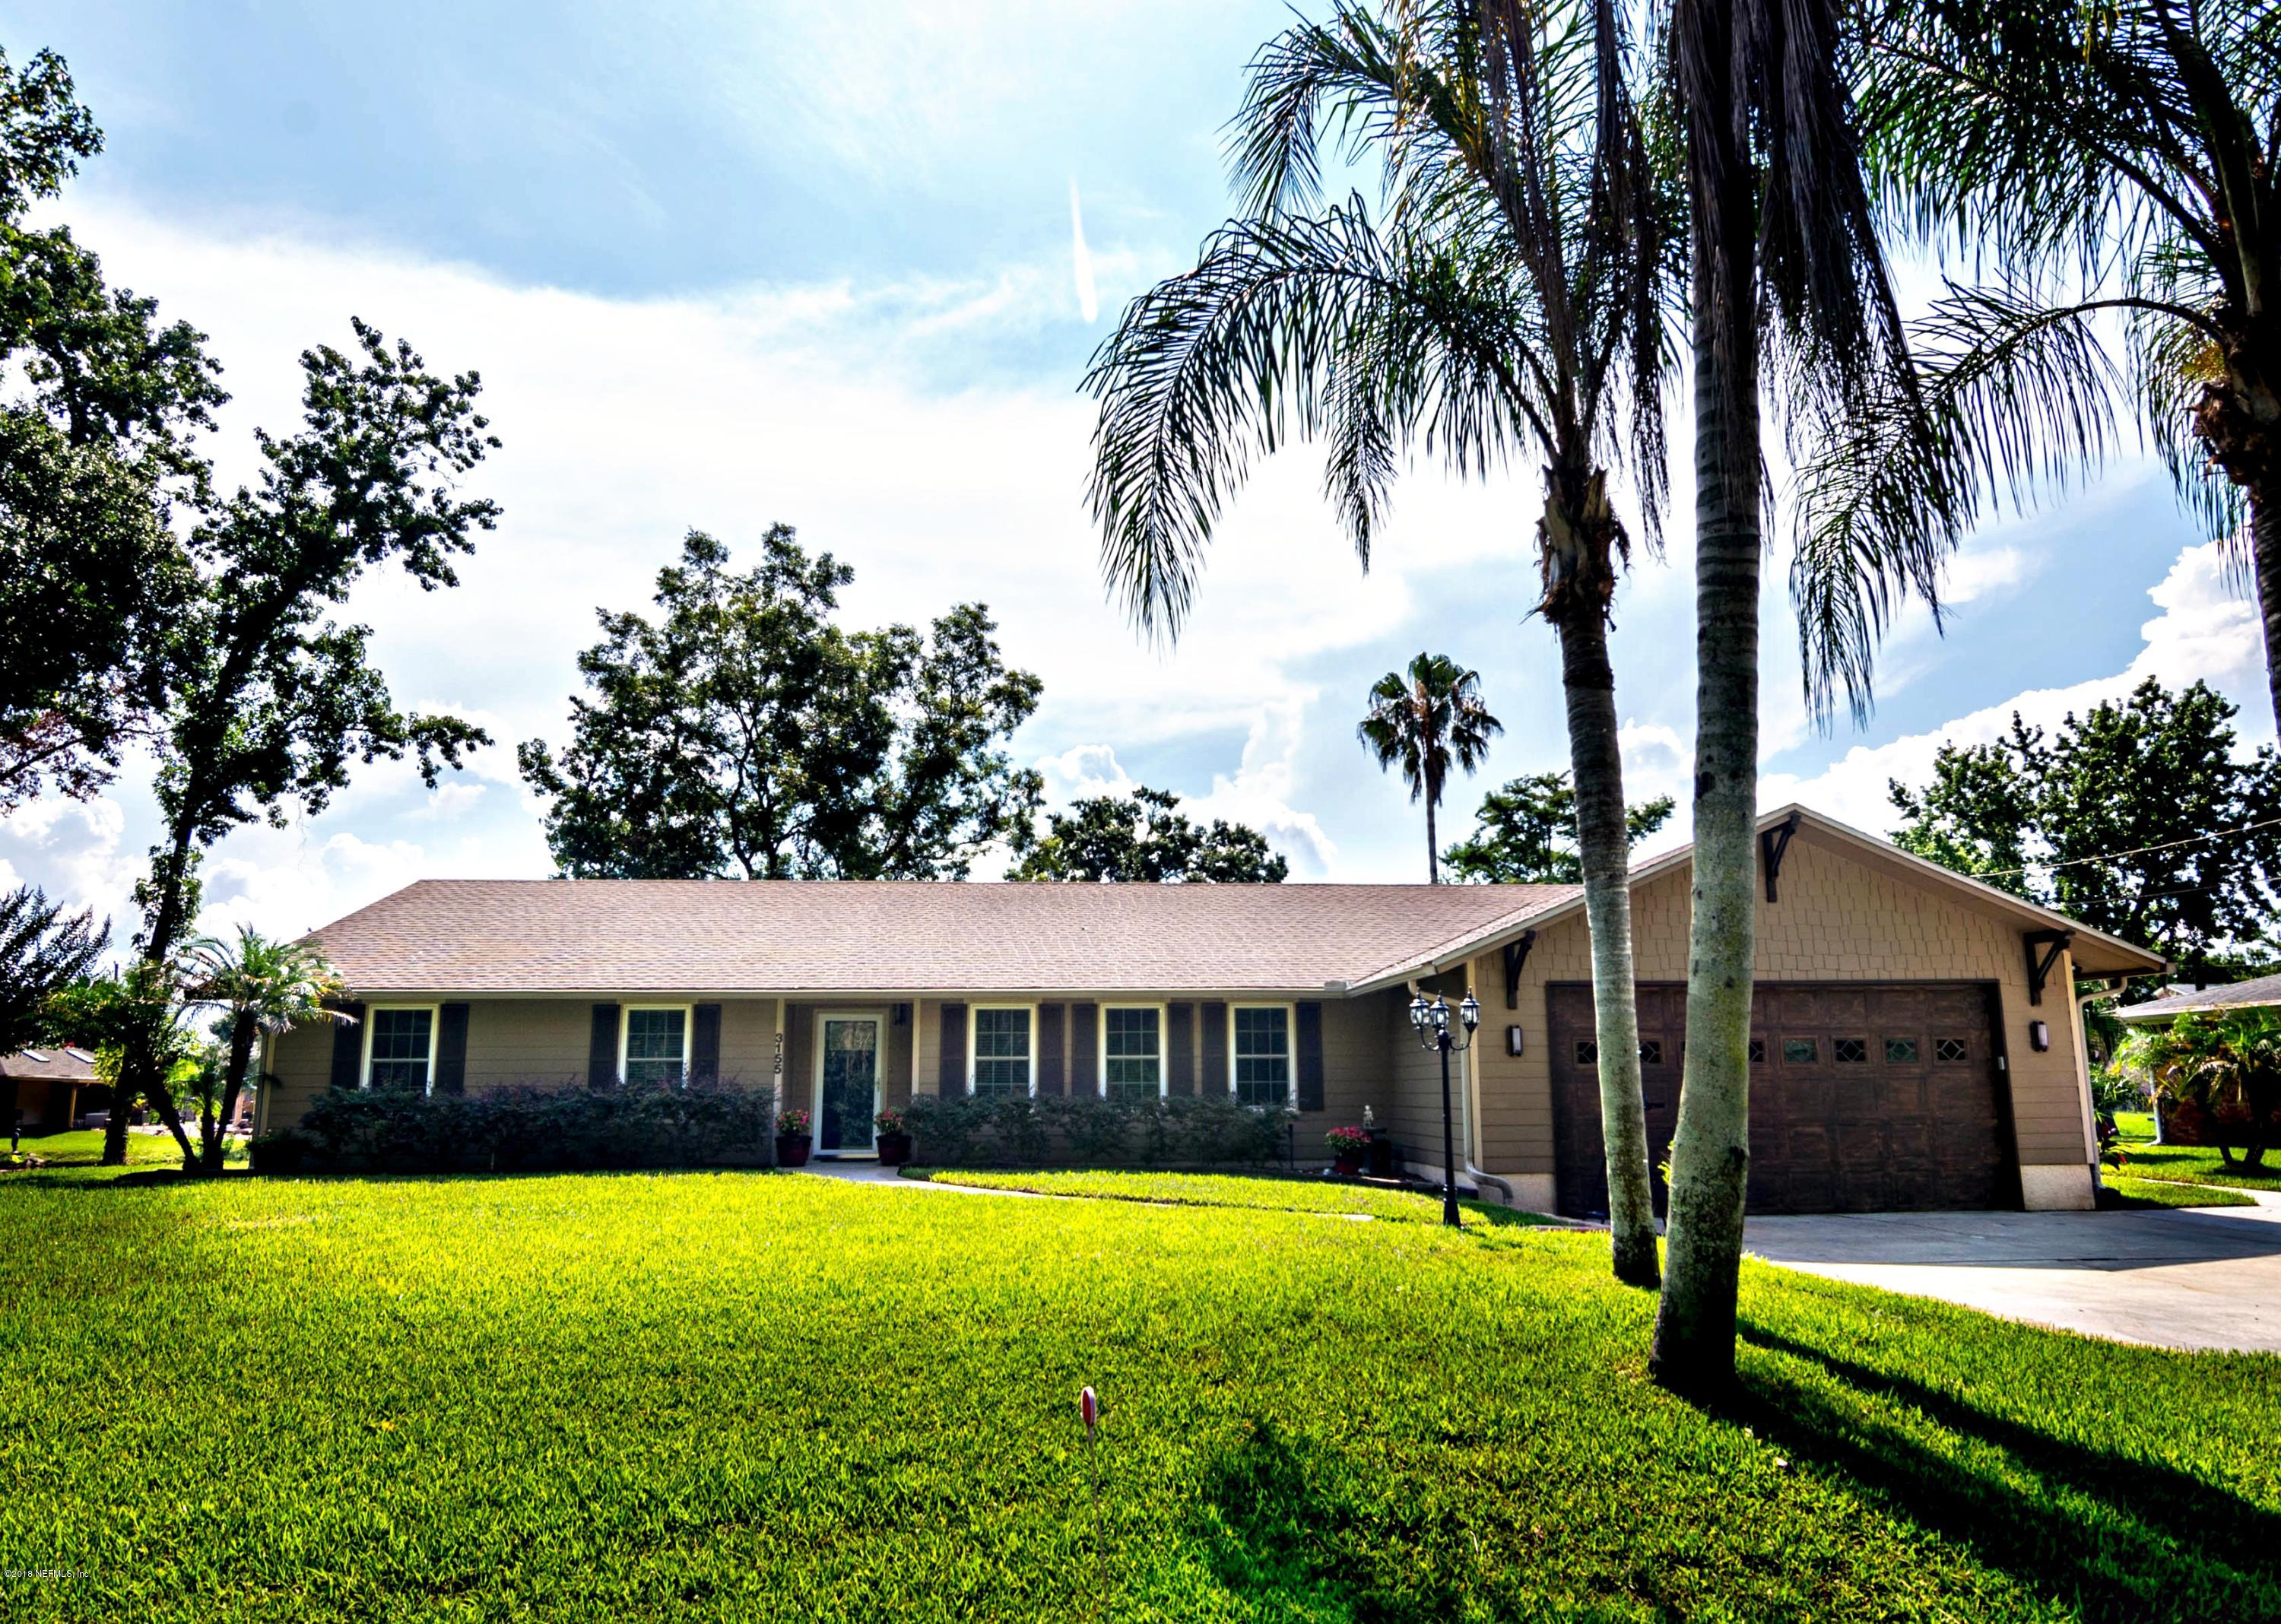 3155 CREIGHTON FOREST, ORANGE PARK, FLORIDA 32003, 4 Bedrooms Bedrooms, ,3 BathroomsBathrooms,Residential - single family,For sale,CREIGHTON FOREST,946391